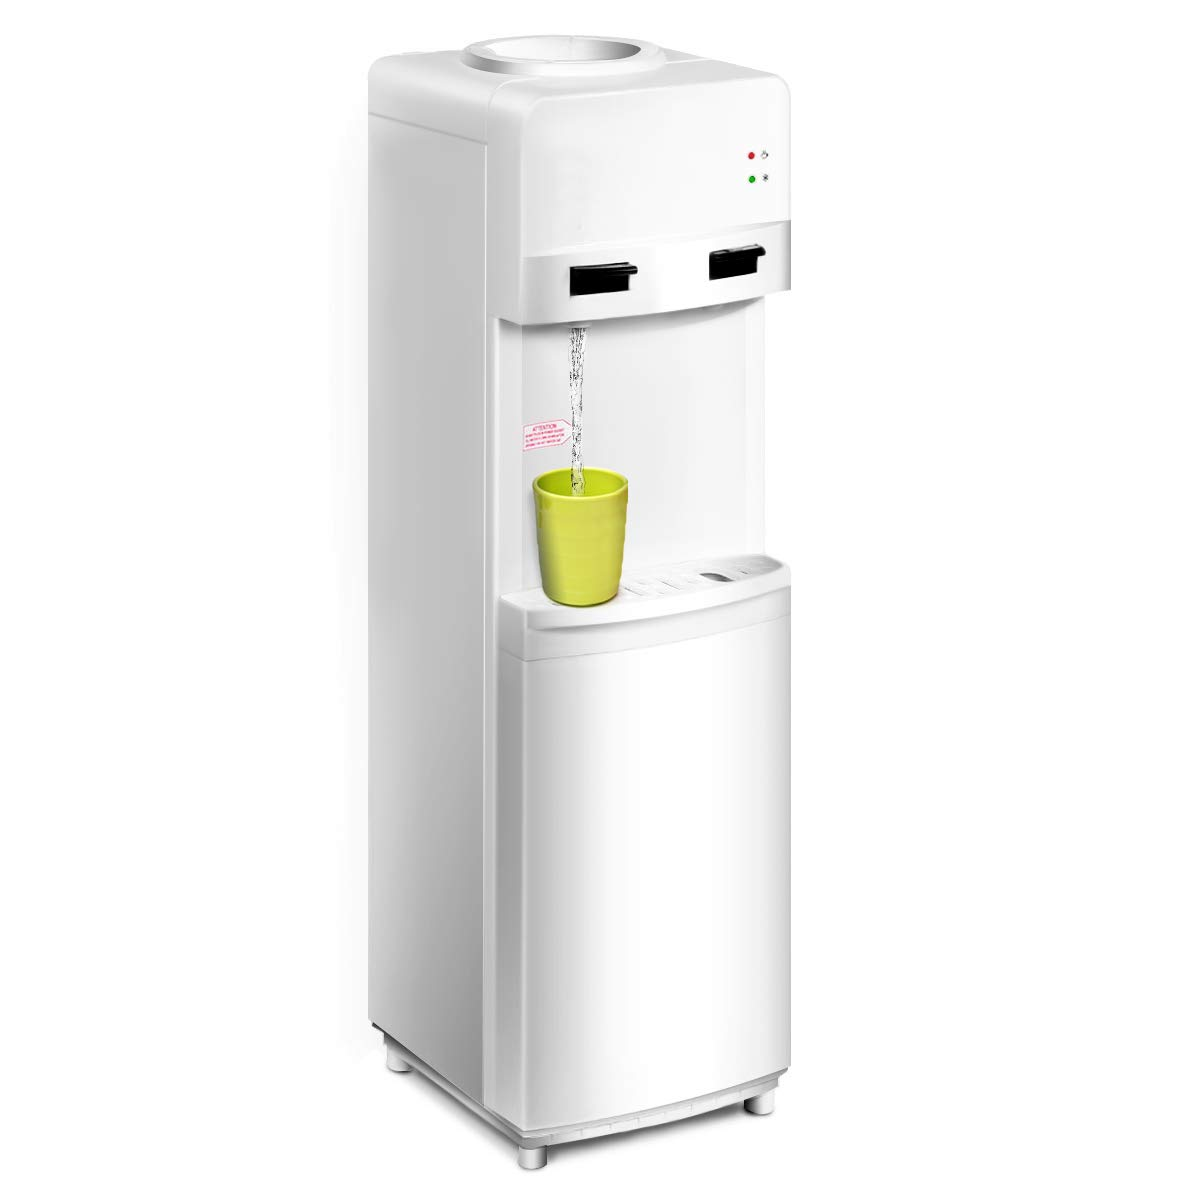 COSTWAY Water Cooler Dispenser 5 Gallon Top Loading Freestanding Water Dispenser with Hot and Cold Water, Perfect for Home and Office (White) by COSTWAY